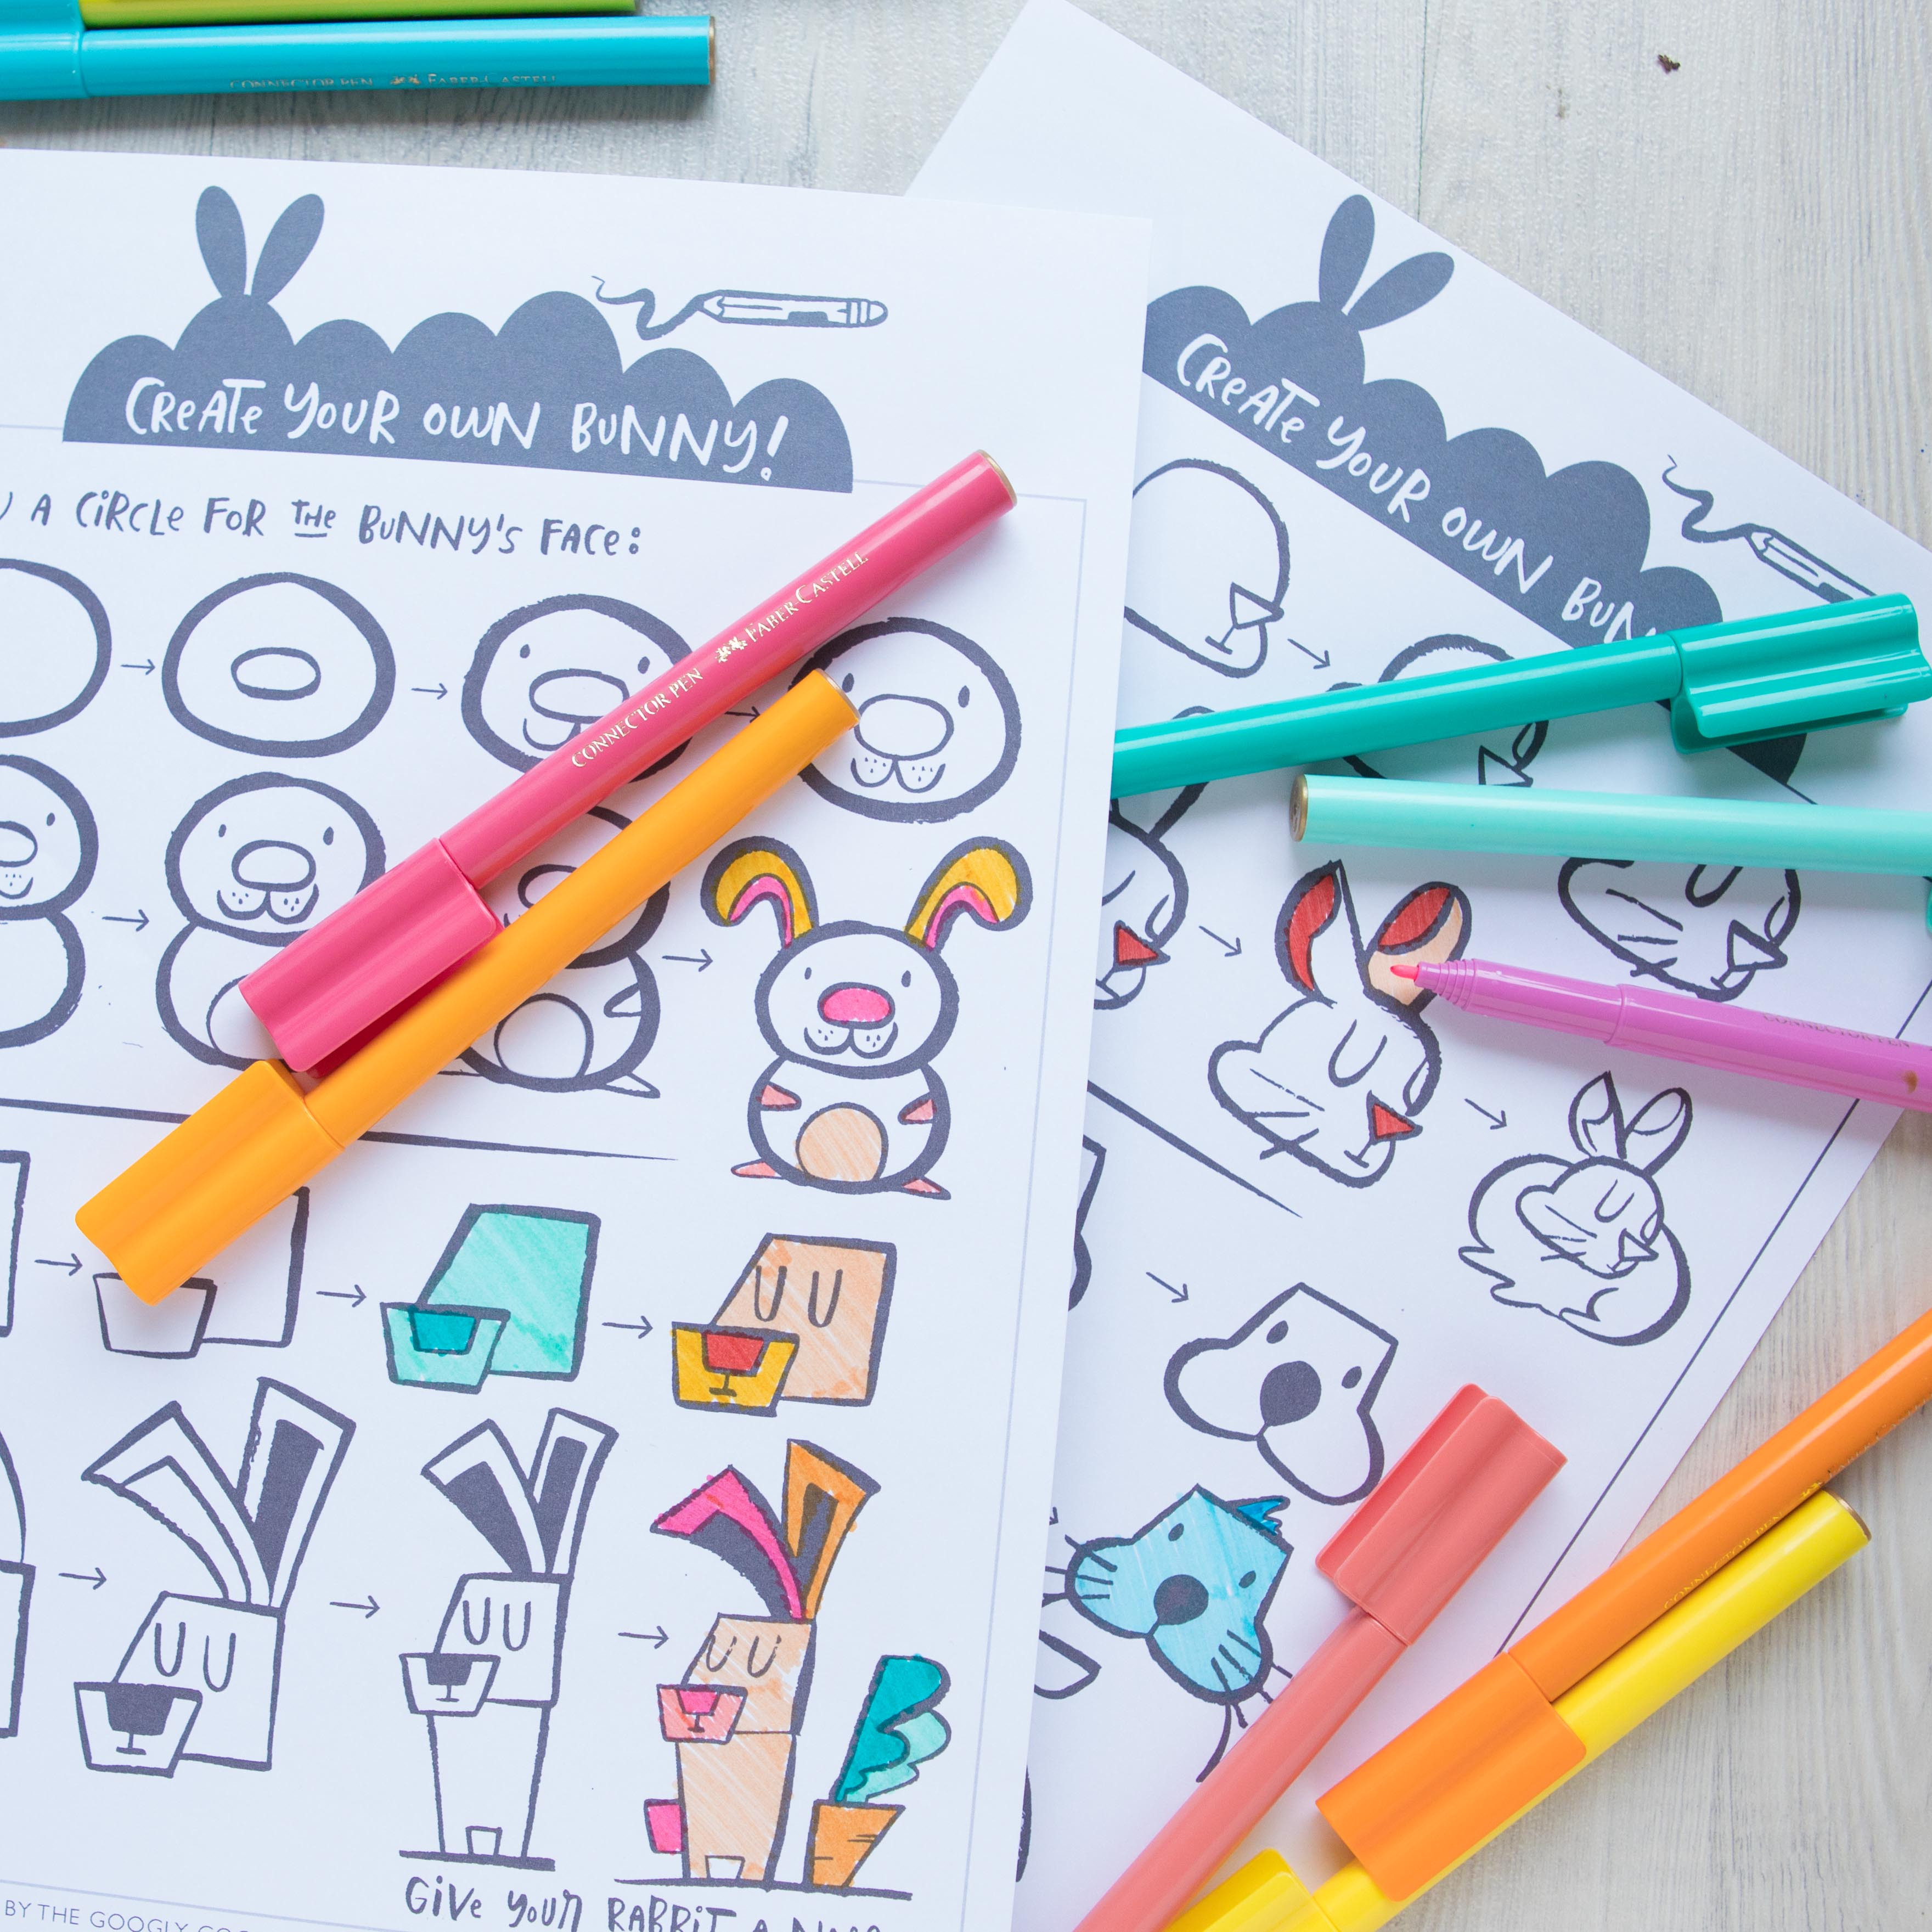 Downloadable Drawing Worksheets: How to Draw a Bunny